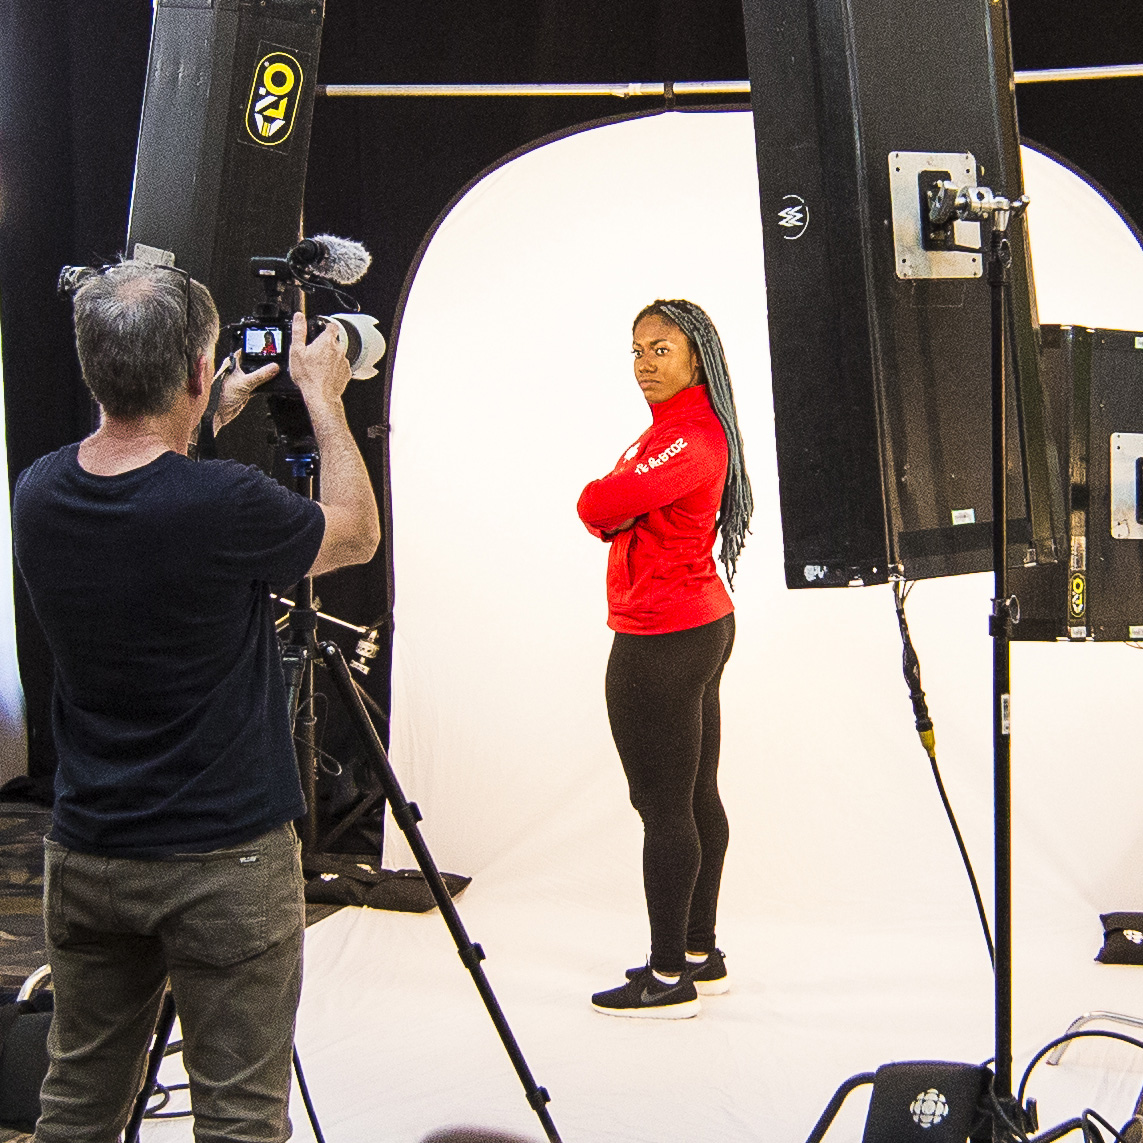 Female olympian is posing for a headshot photo